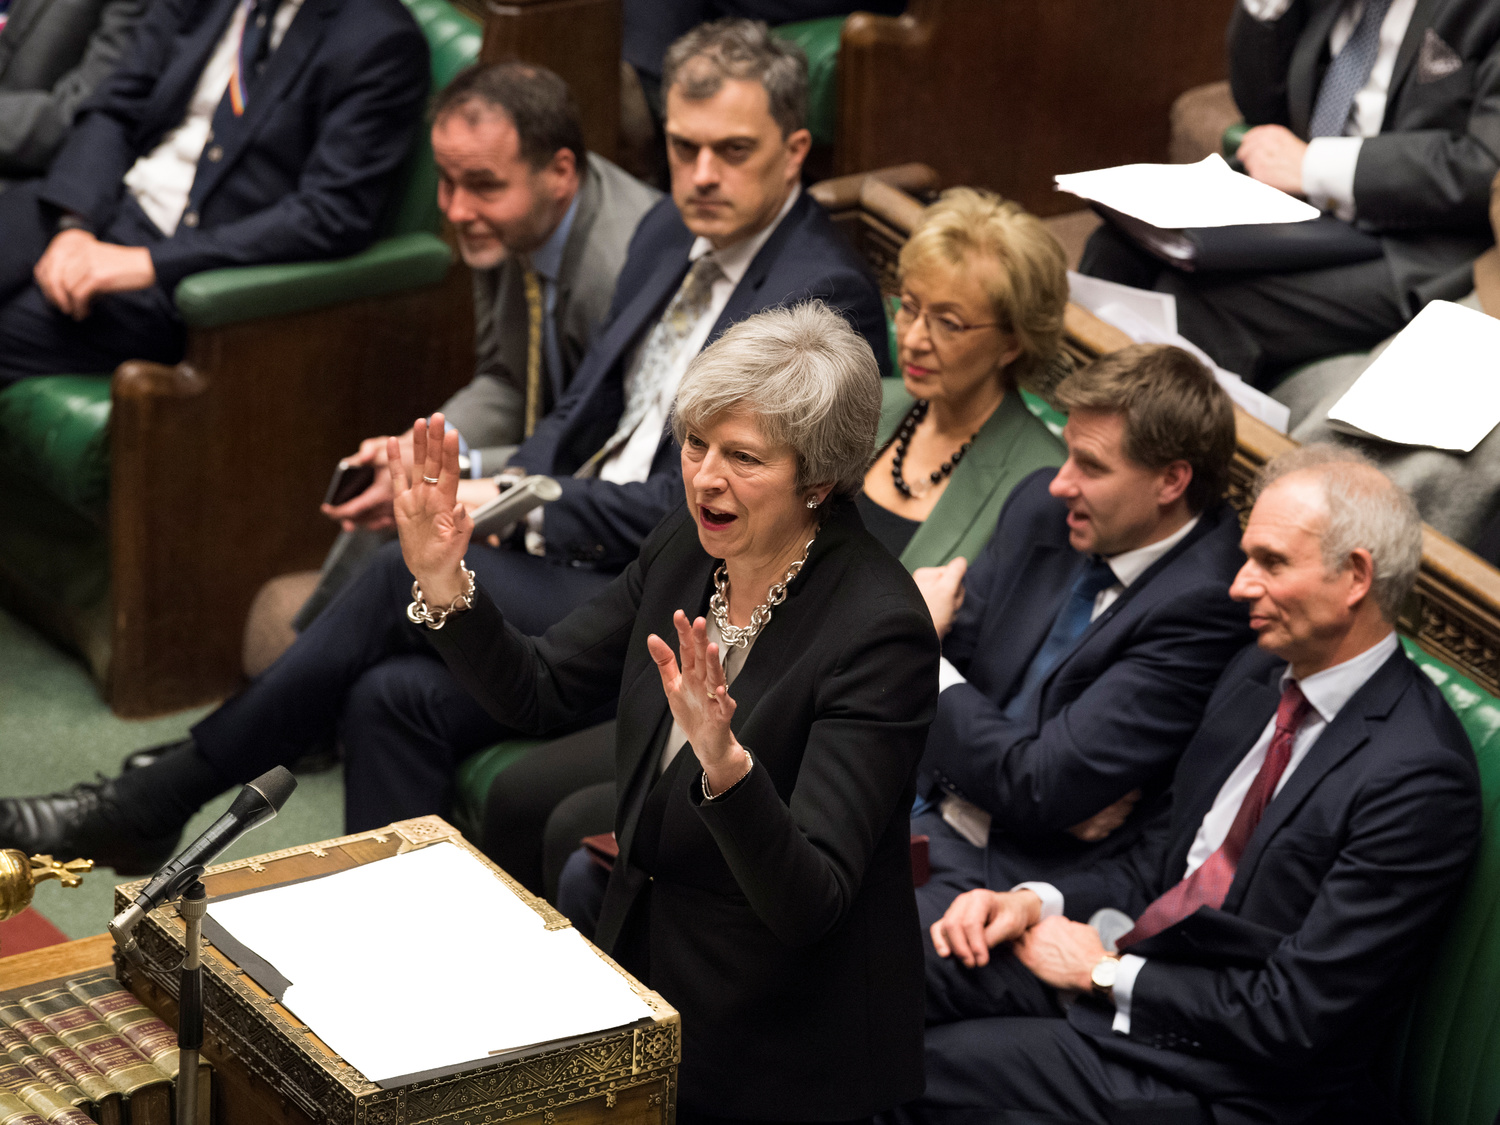 British Prime Minister Theresa May during a parliamentary session on Brexit. Almost three years since the 2016 referendum, London is still part of the EU, no one knows when it will leave and the country is increasingly divided. UK Parliament/Mark Duffy/Handout via REUTERS